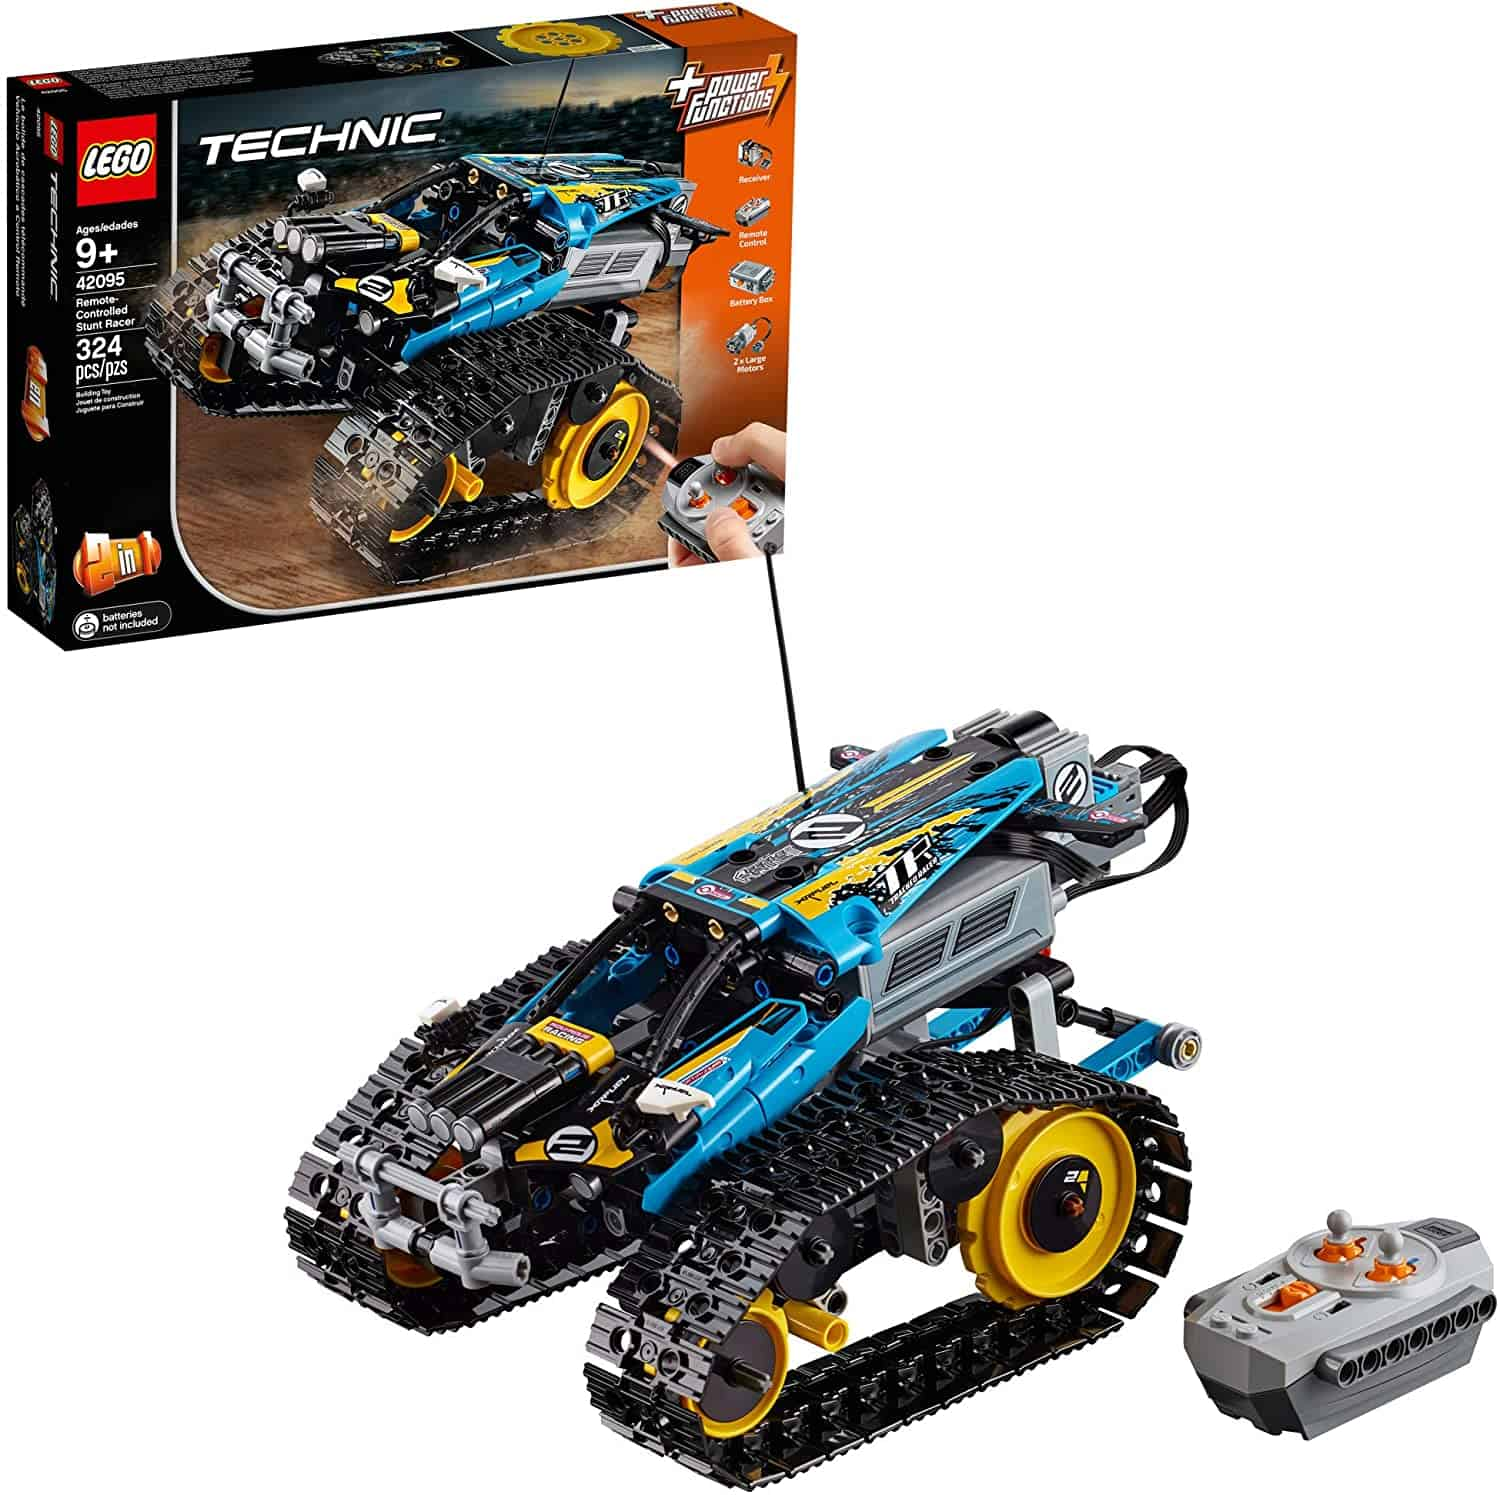 LEGO Technic Remote-Controlled Stunt Racer Building Kit